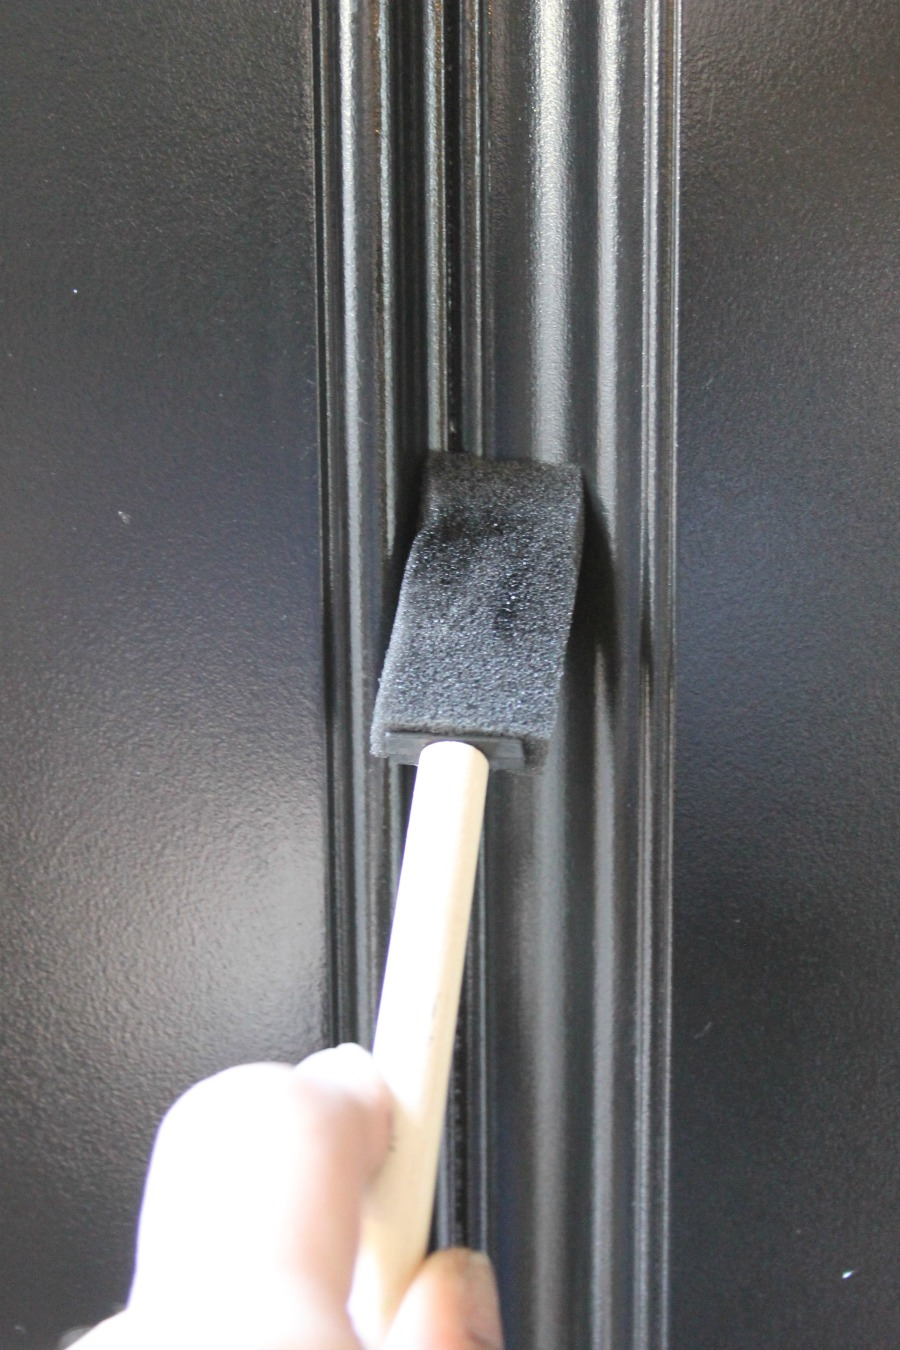 Curb Appeal Ideas - Refinish Front Door Using Dry Foam Brush to Smooth Out Drips